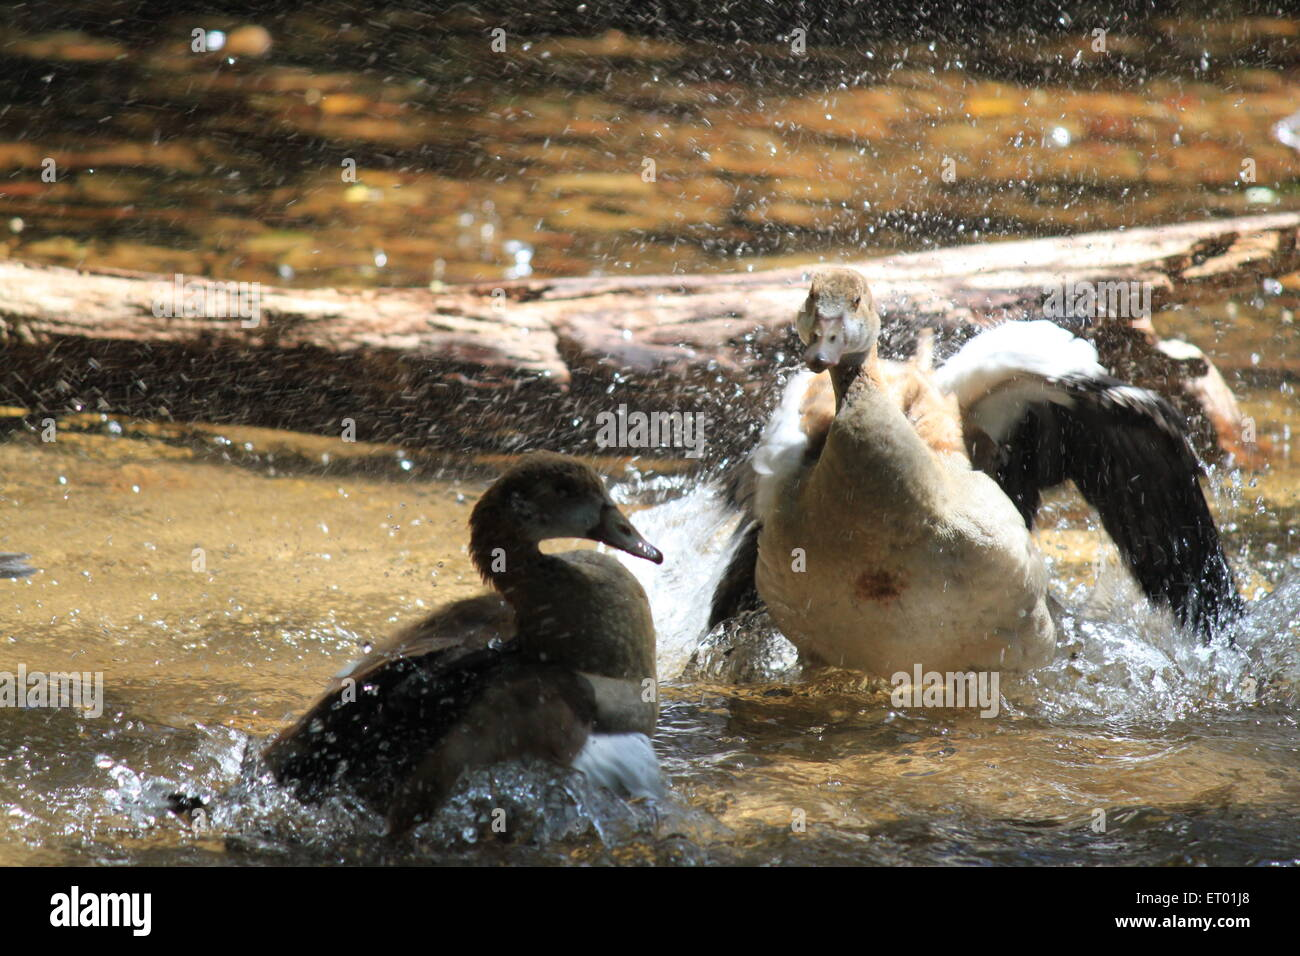 Duck bathing aggression - Stock Image